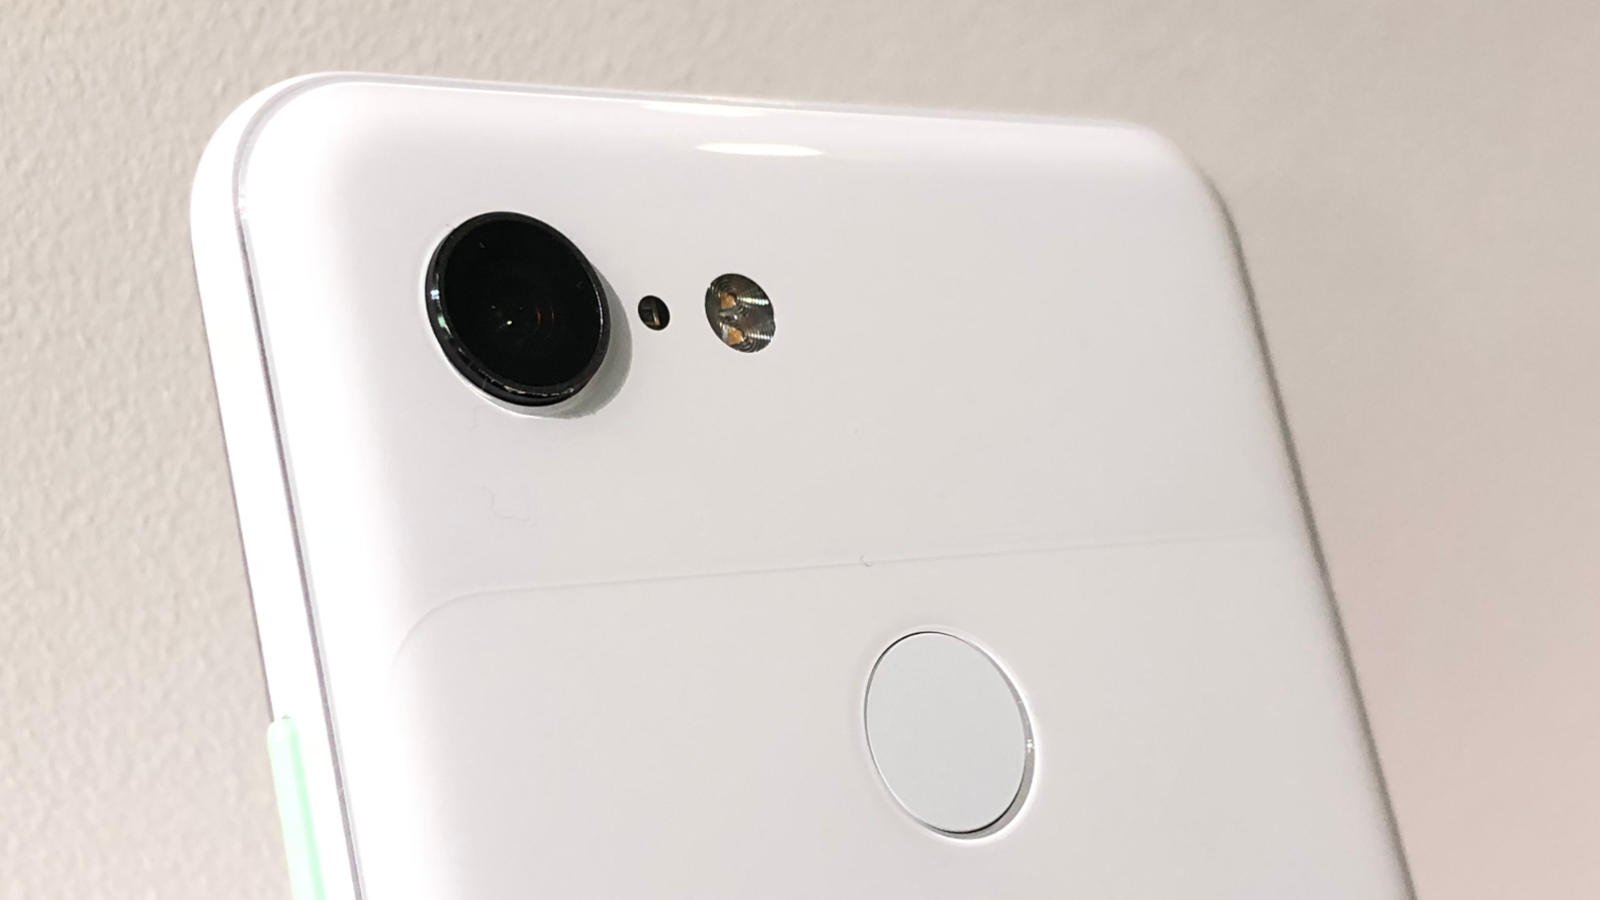 Budget Pixel with a headphone jack? Seems to good to be true.